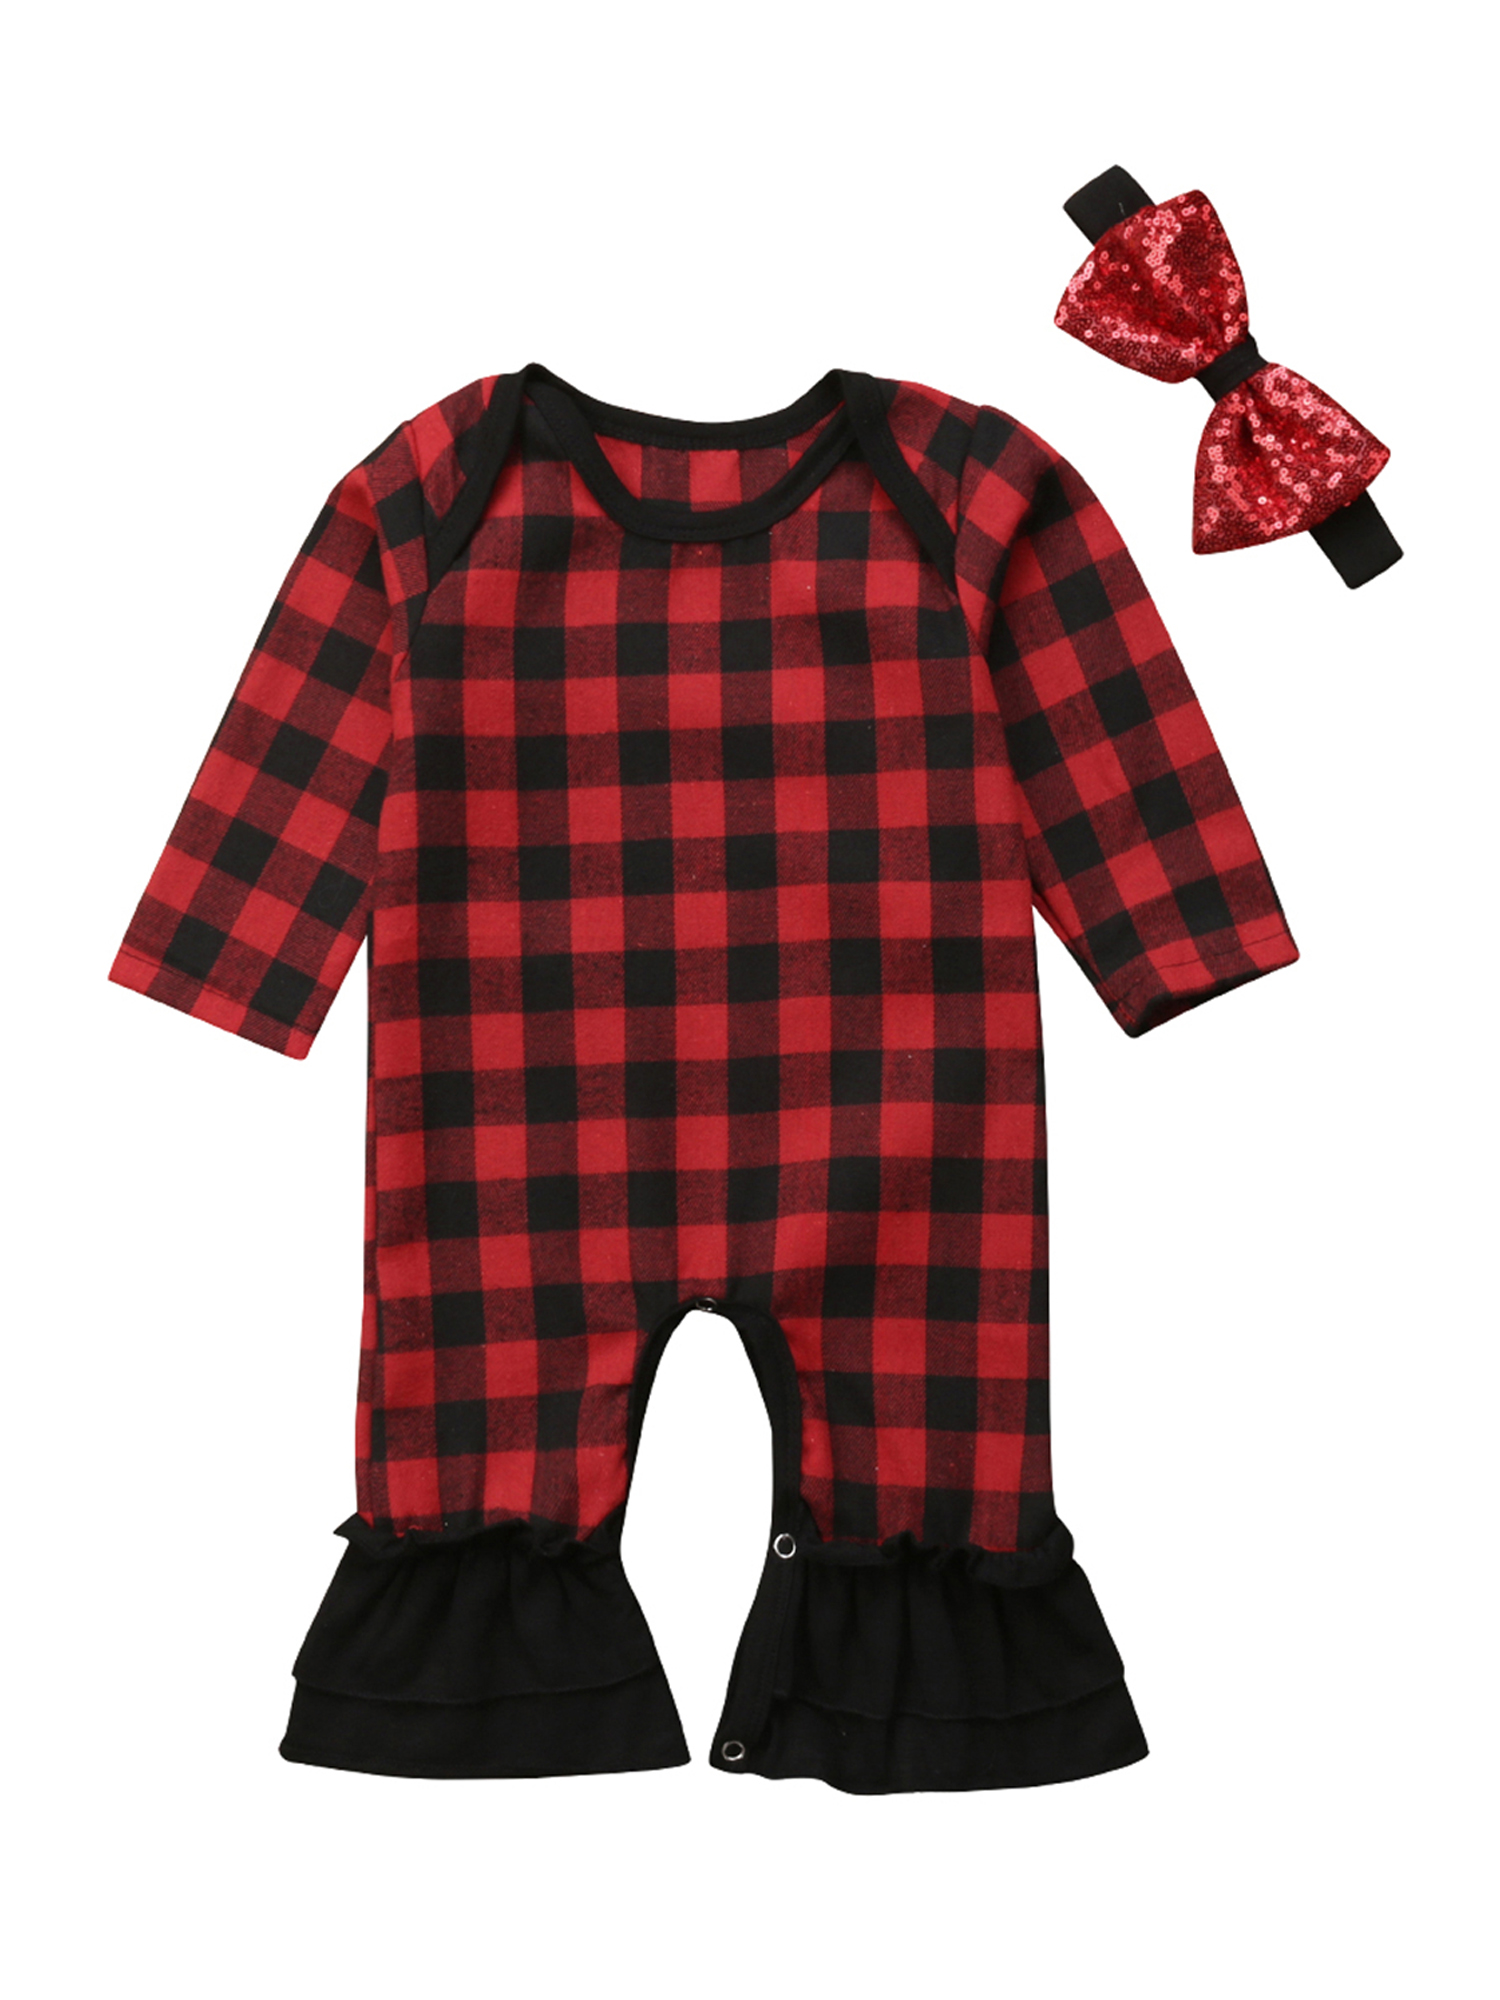 Bowanadacles Baby Christmas Clothes Girls Lace Plaids Flared Sleeve Romper Dress Outfits Cute Baby Girl Clothes 0-24M